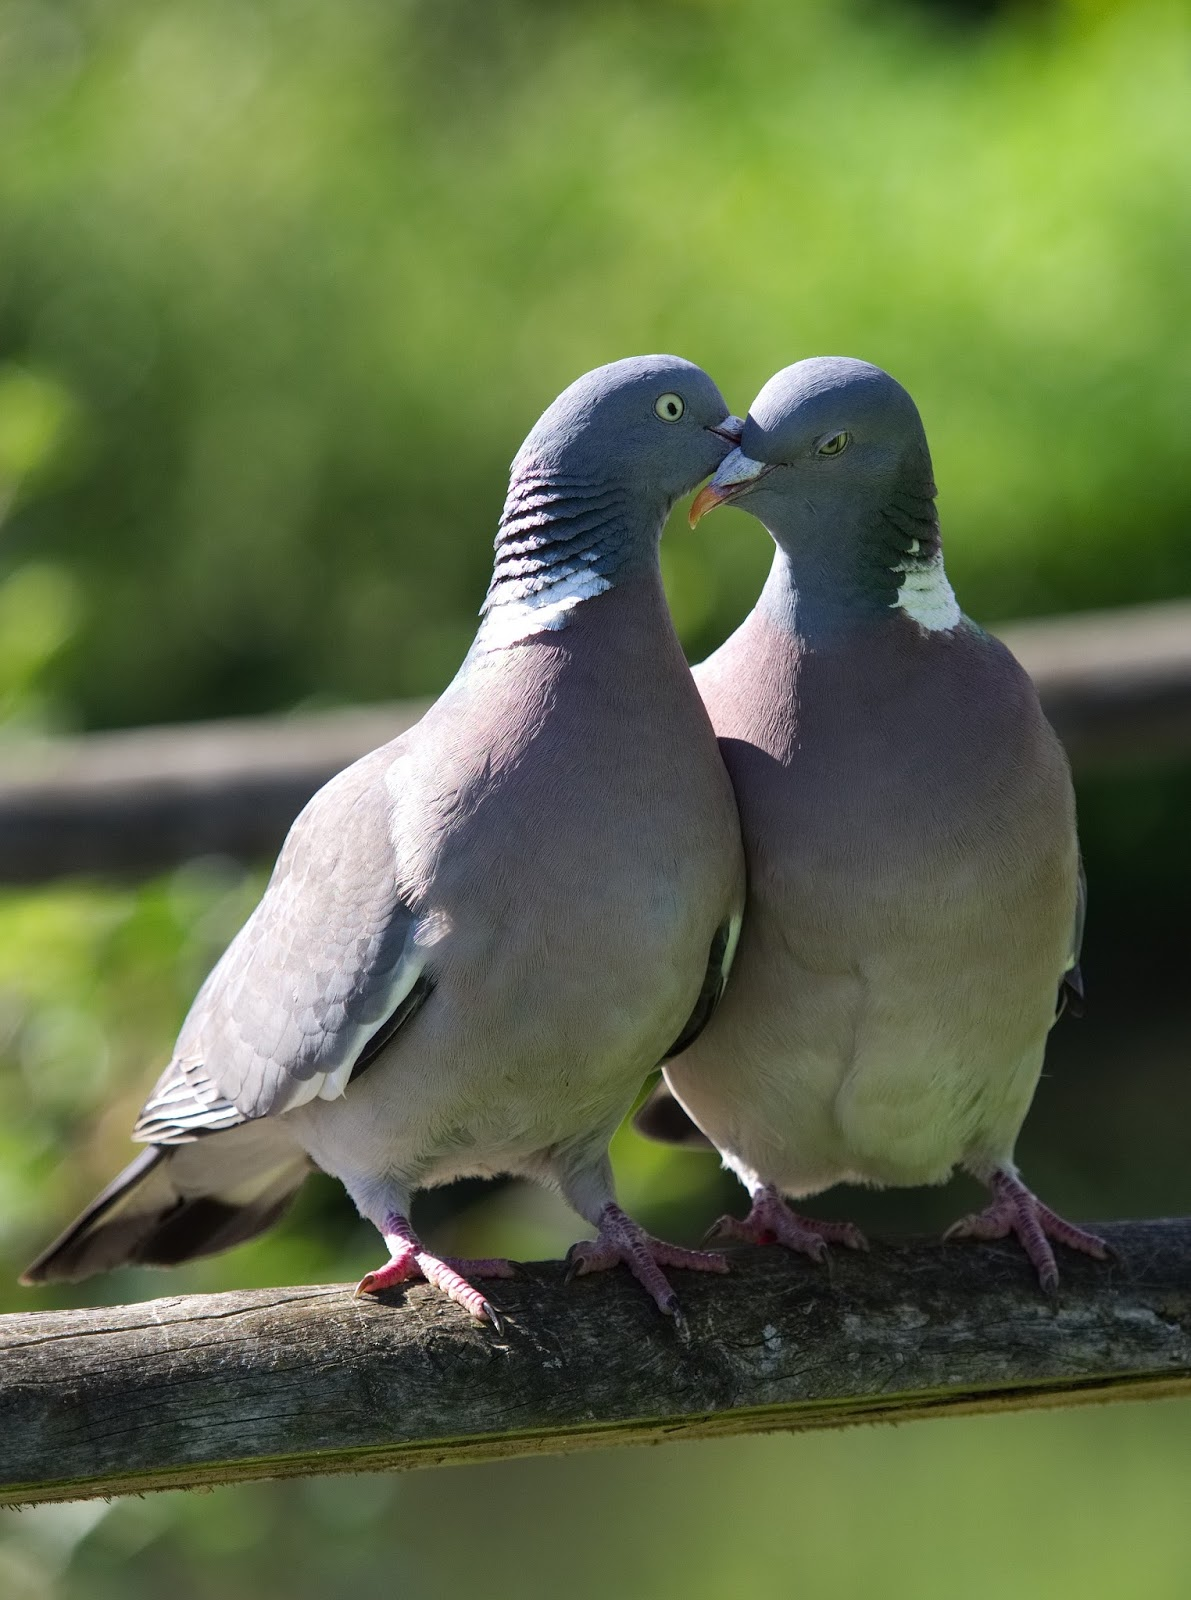 Picture of a pair of pigeons.